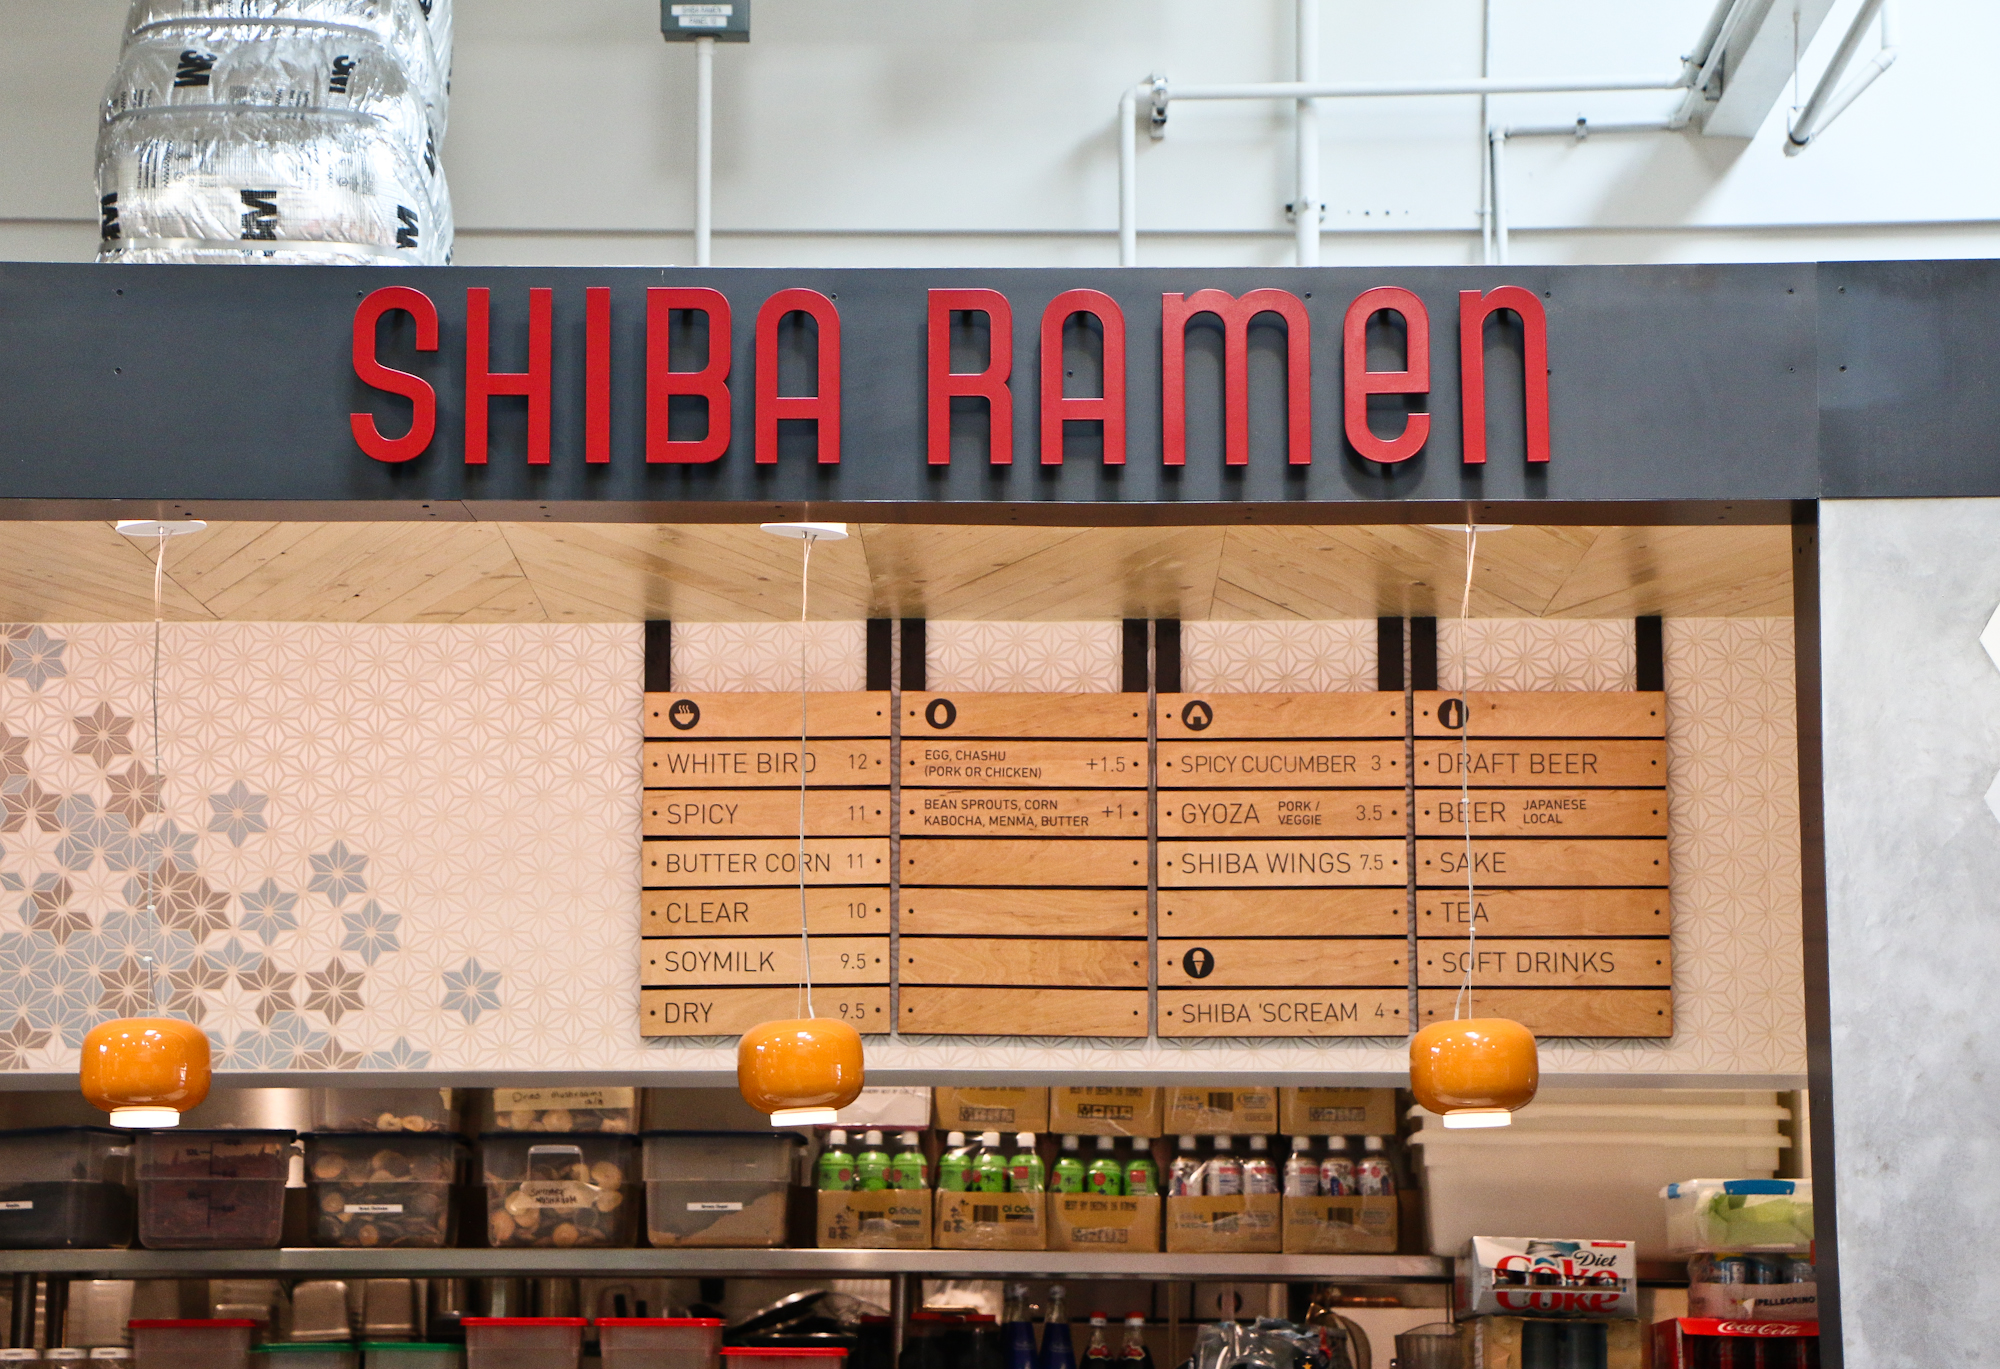 Prototype:  We're treating the original Shiba Ramen kiosk as setting the framework for the full restaurant design.